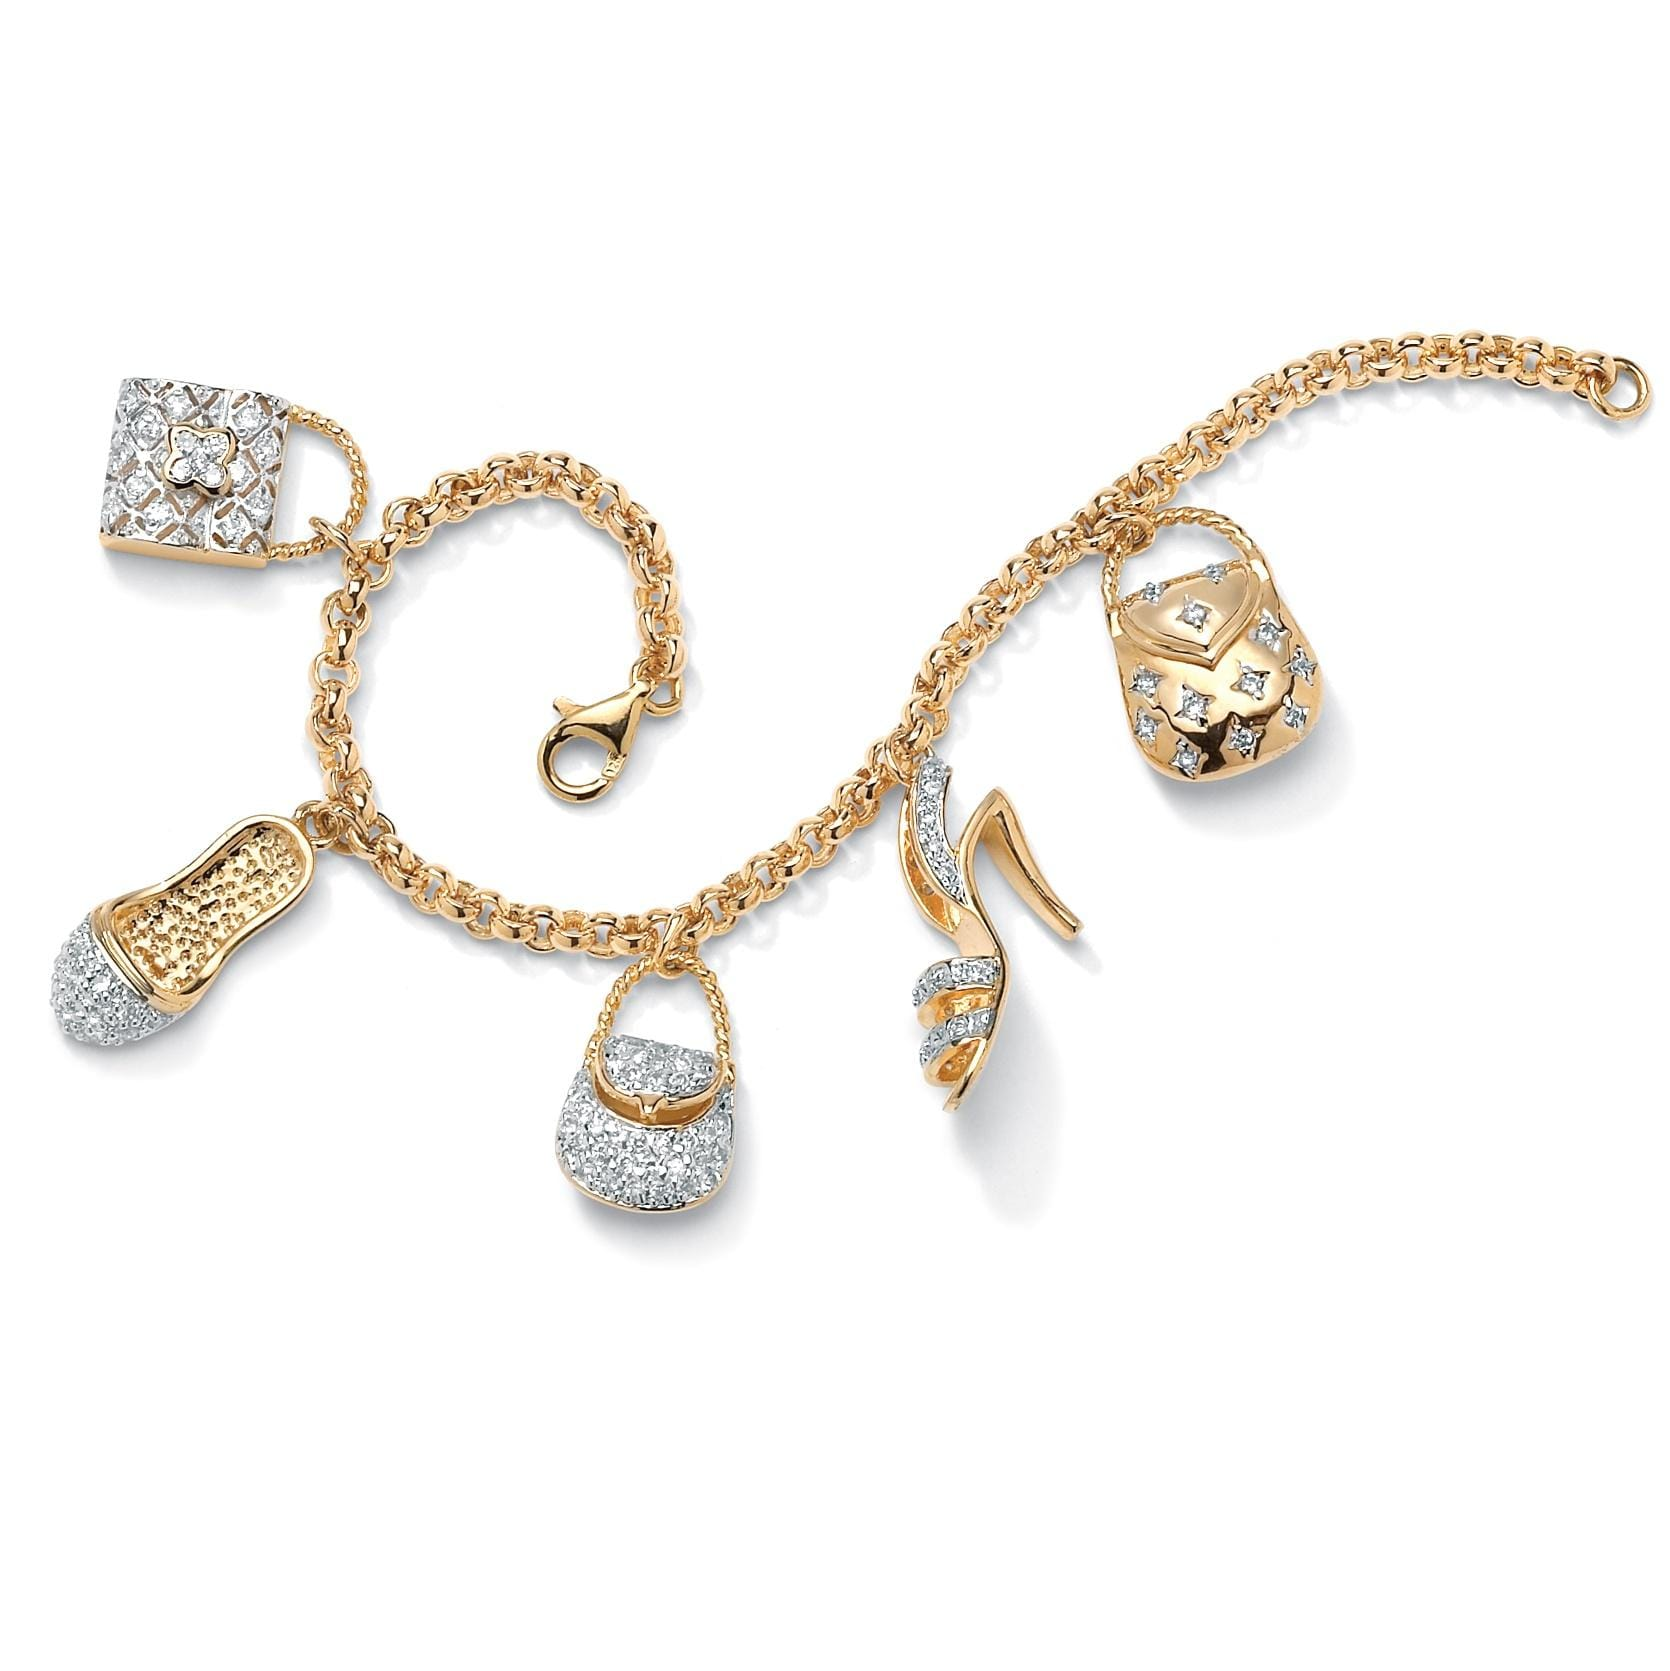 PalmBeach 1.53 TCW Cubic Zirconia Purses and Shoes Charm Bracelet in Yellow Gold Tone Glam CZ